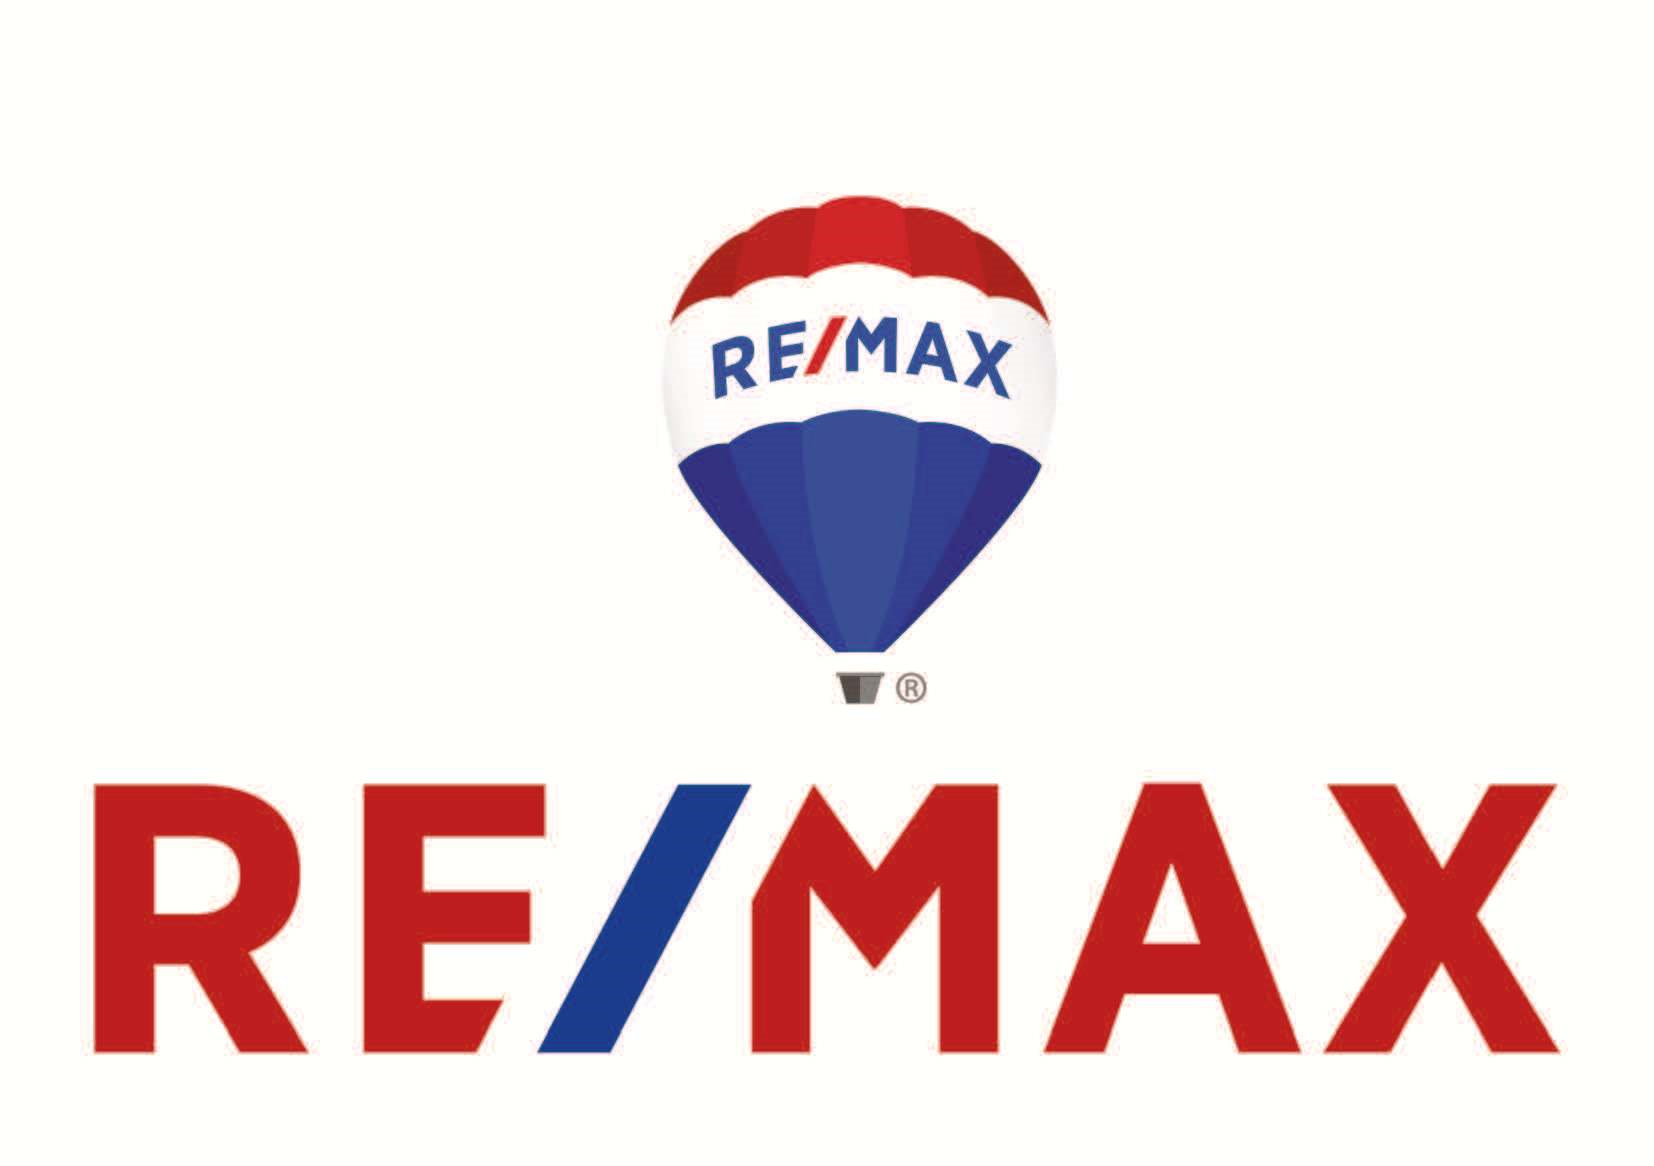 RE/MAX  Lüneburg - A.E.B. Immobilien GmbH & Co. KG in Lüneburg